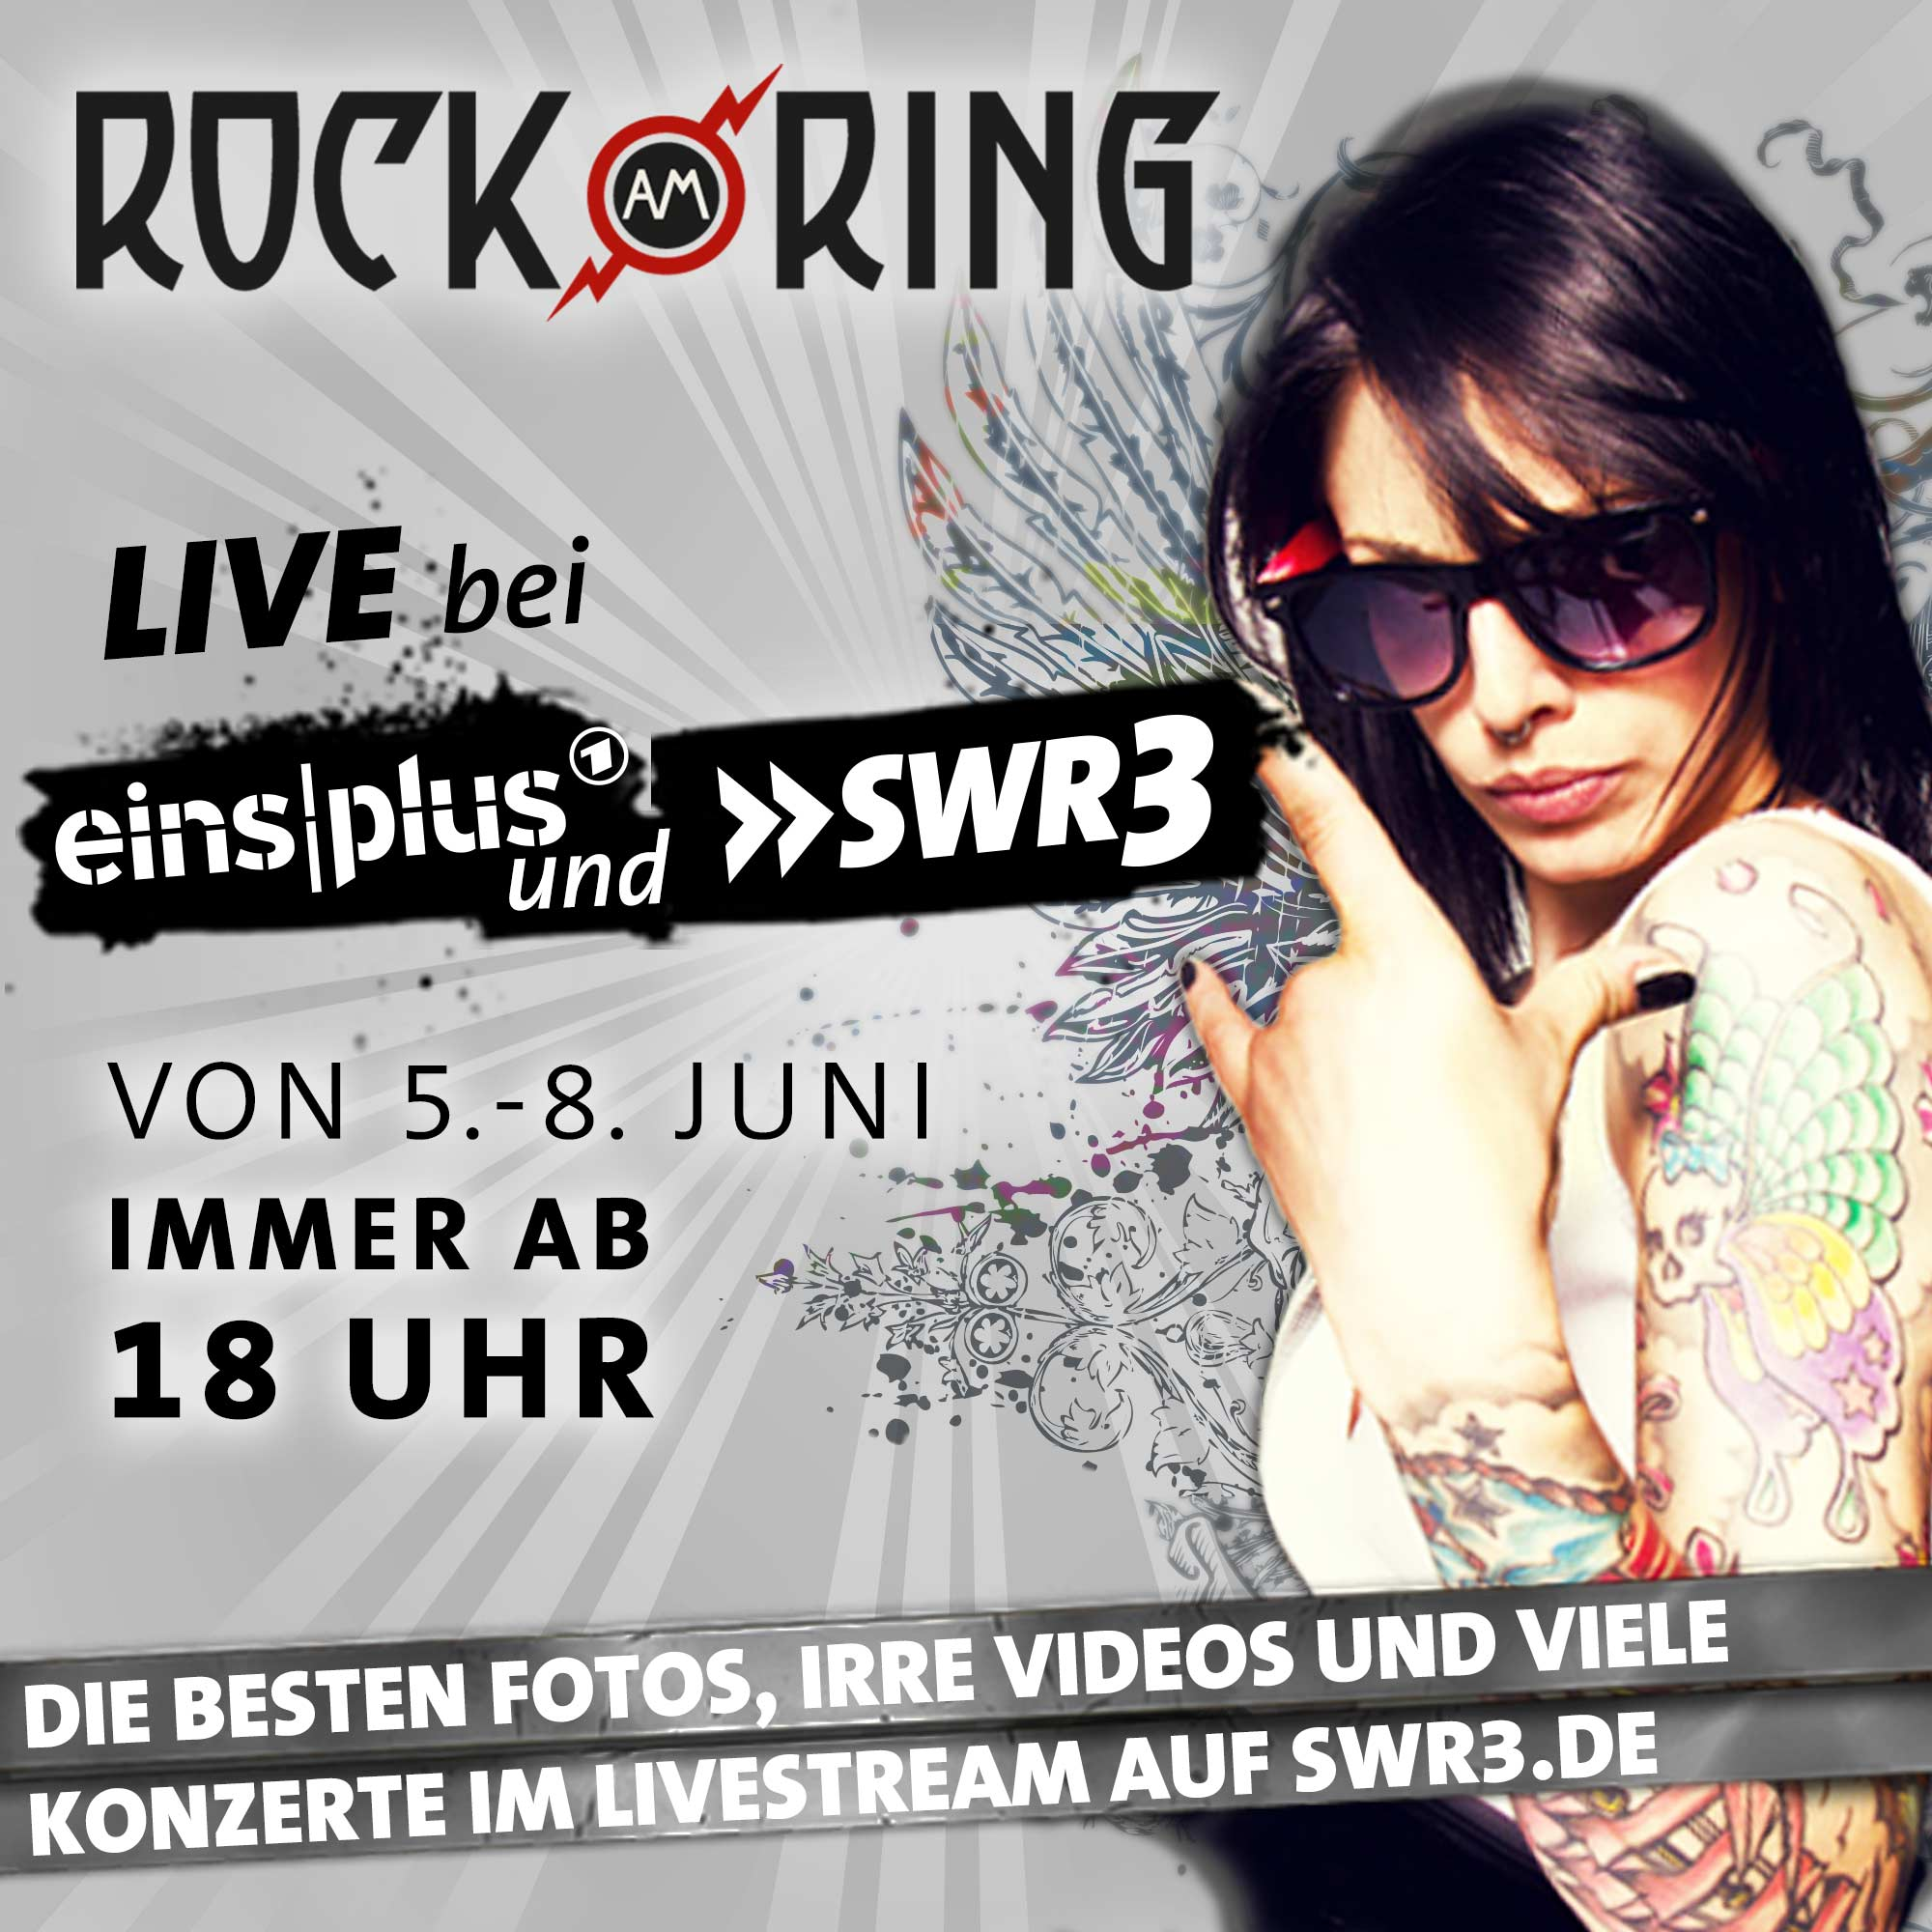 das ding rock am ring